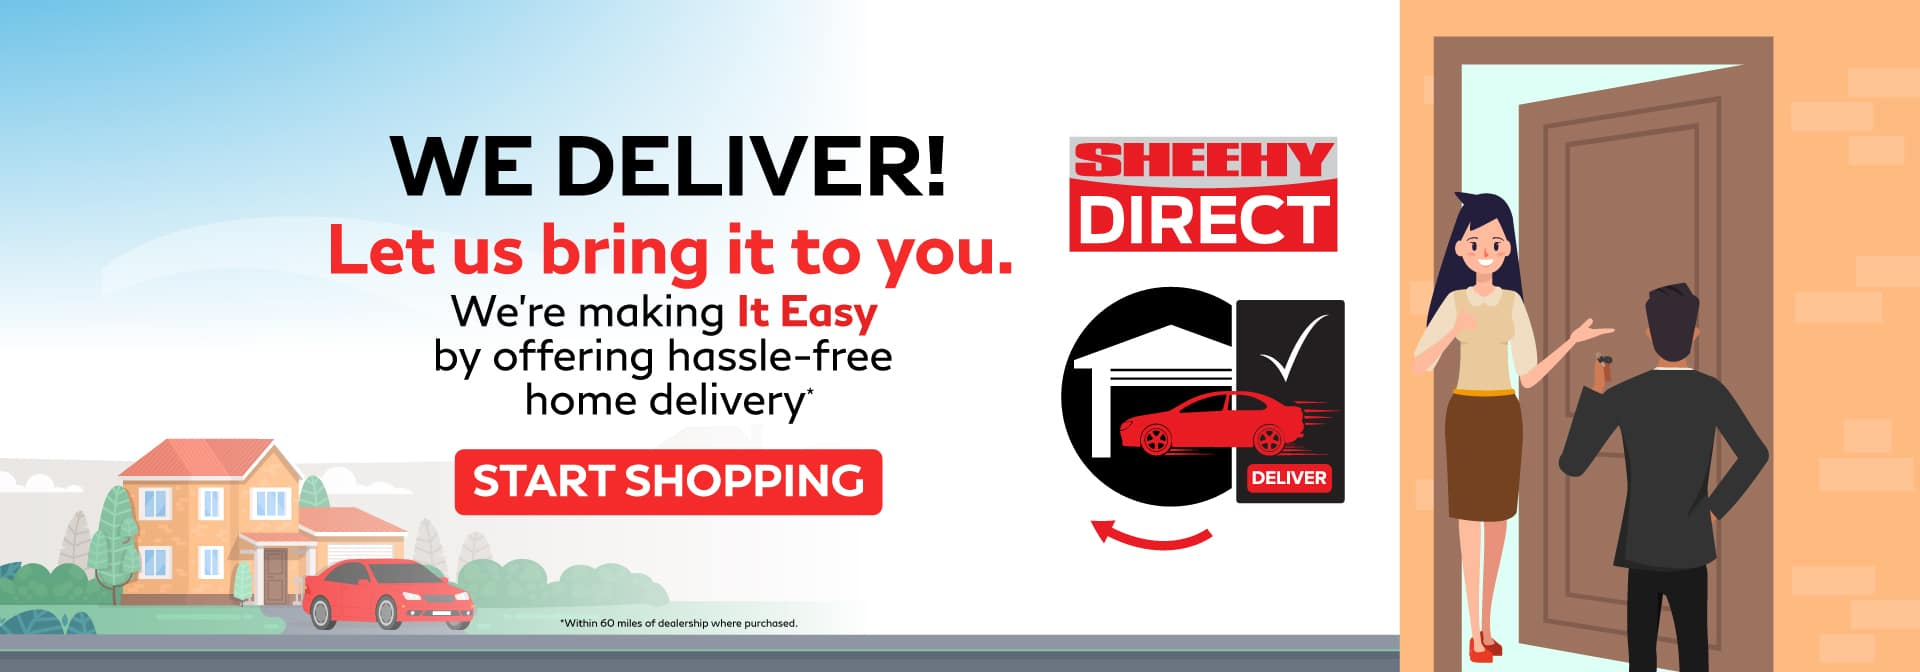 INFINITI Sheehy HomeDelivery 1920x672 webslider